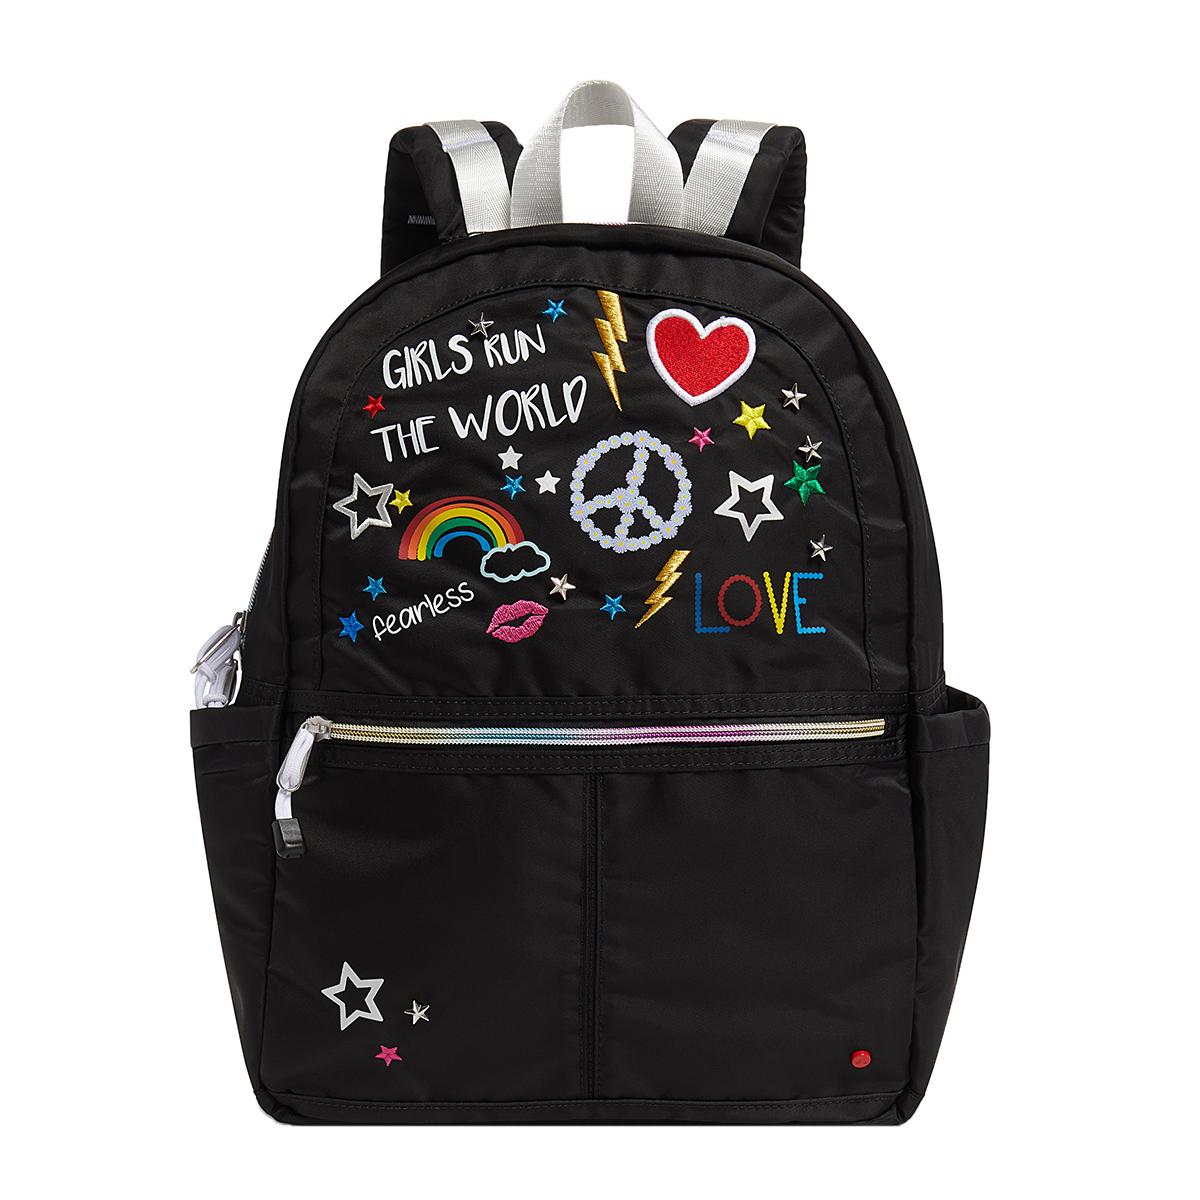 State Bags Kane Backpack in Girl Power